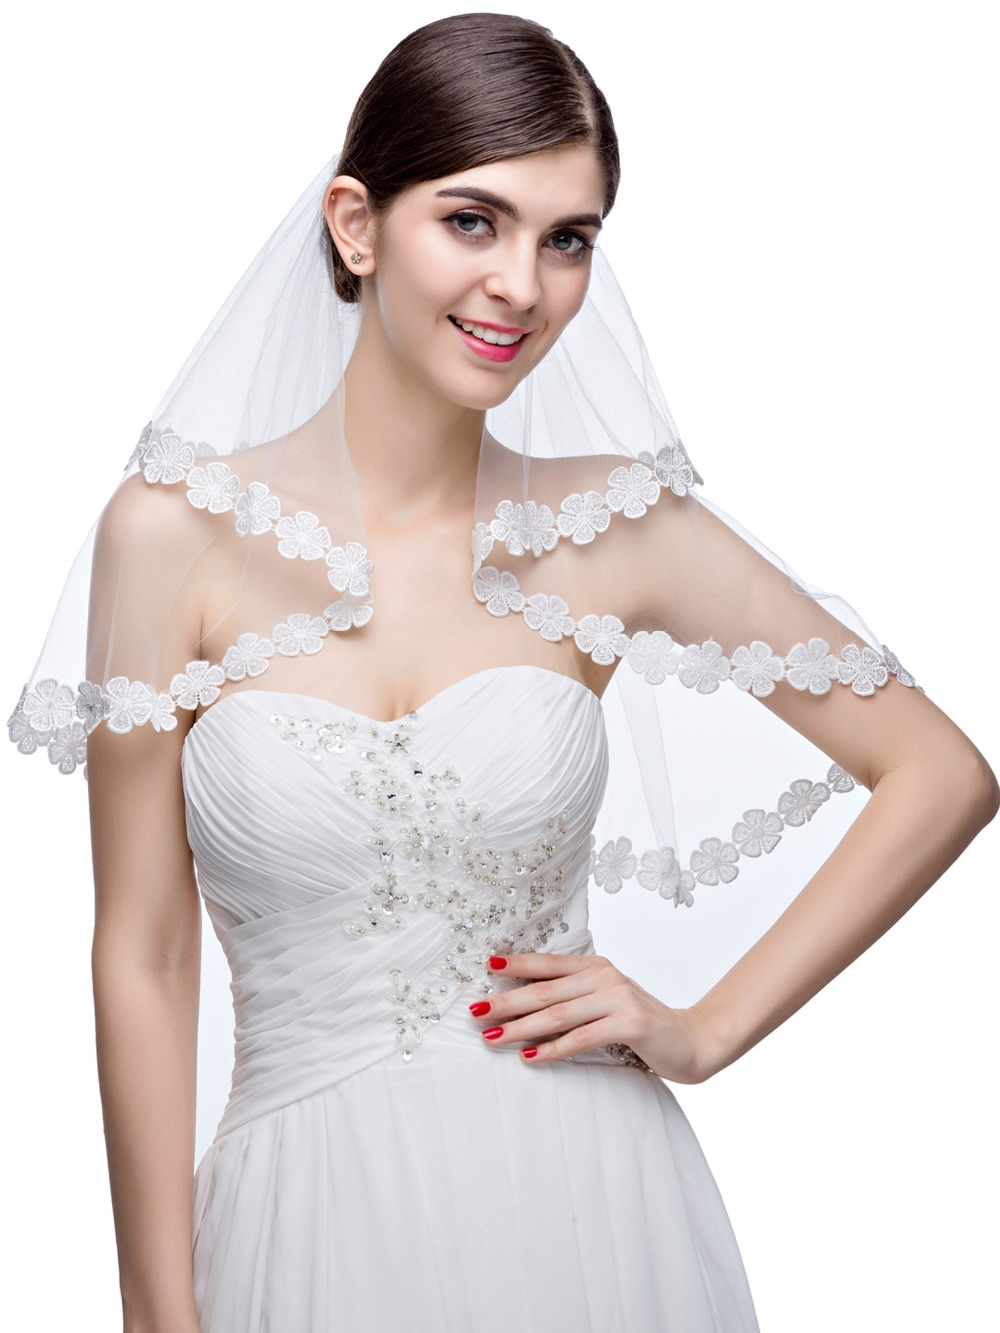 New Arrival In Stock White And Ivory Lace Two-Layer Tulle Wedding Bridal Veil Wedding Accessories Hot Sale(China (Mainland))